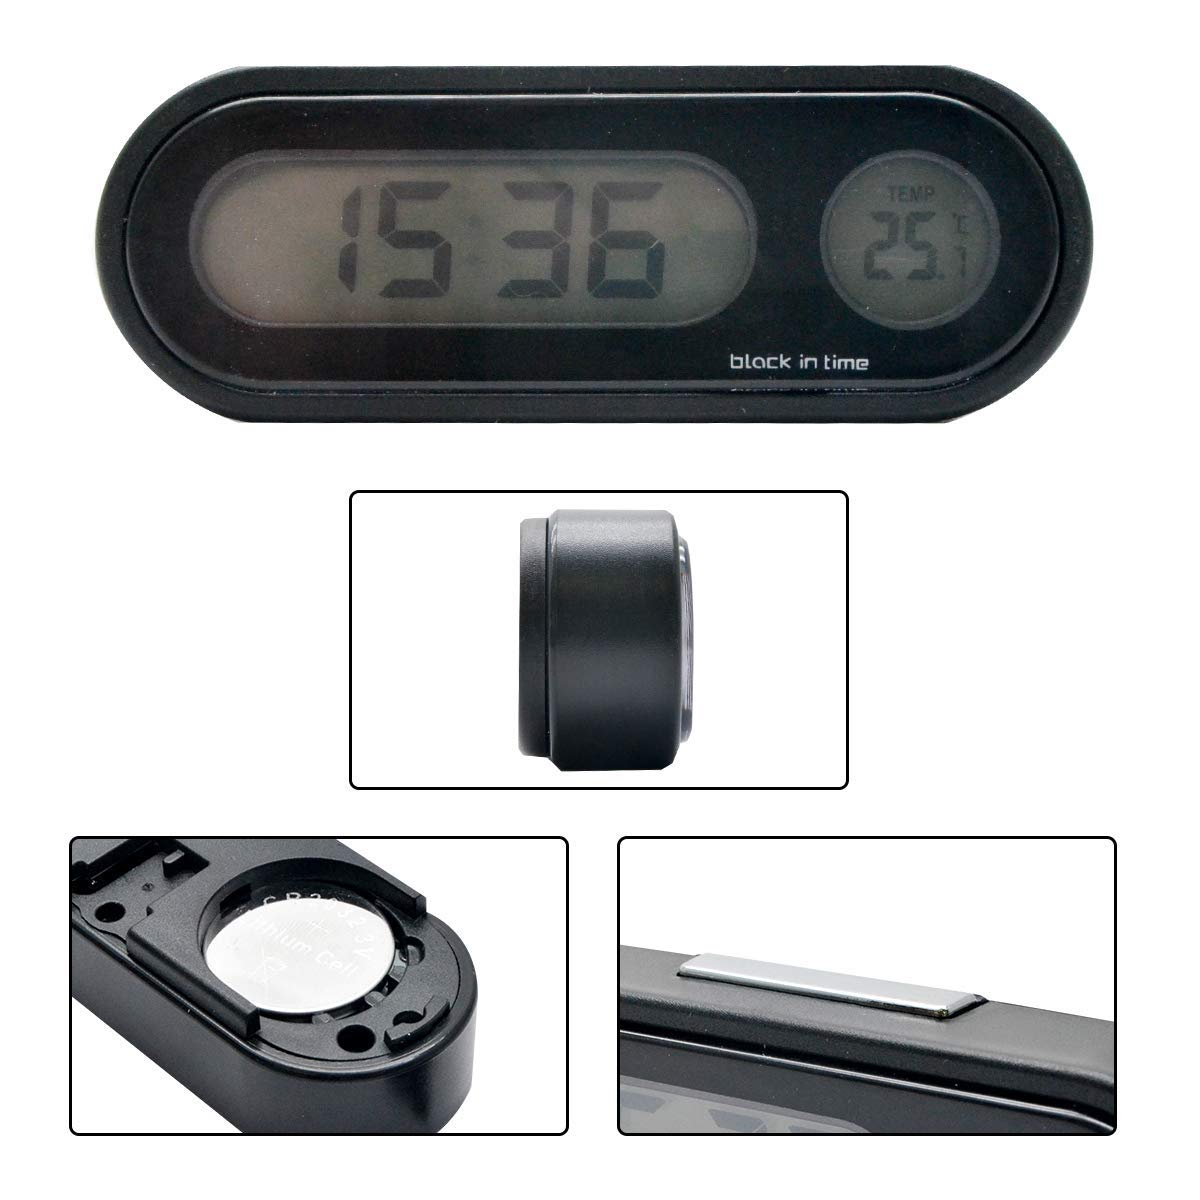 HugeAuto Car Temperature Clock Universal Auto Dashboard Digital Clocks with Blacklight And LCD Screen Adjustable Vehicle Temperature Gauge Support 12h//24h Transformation Modes-Black